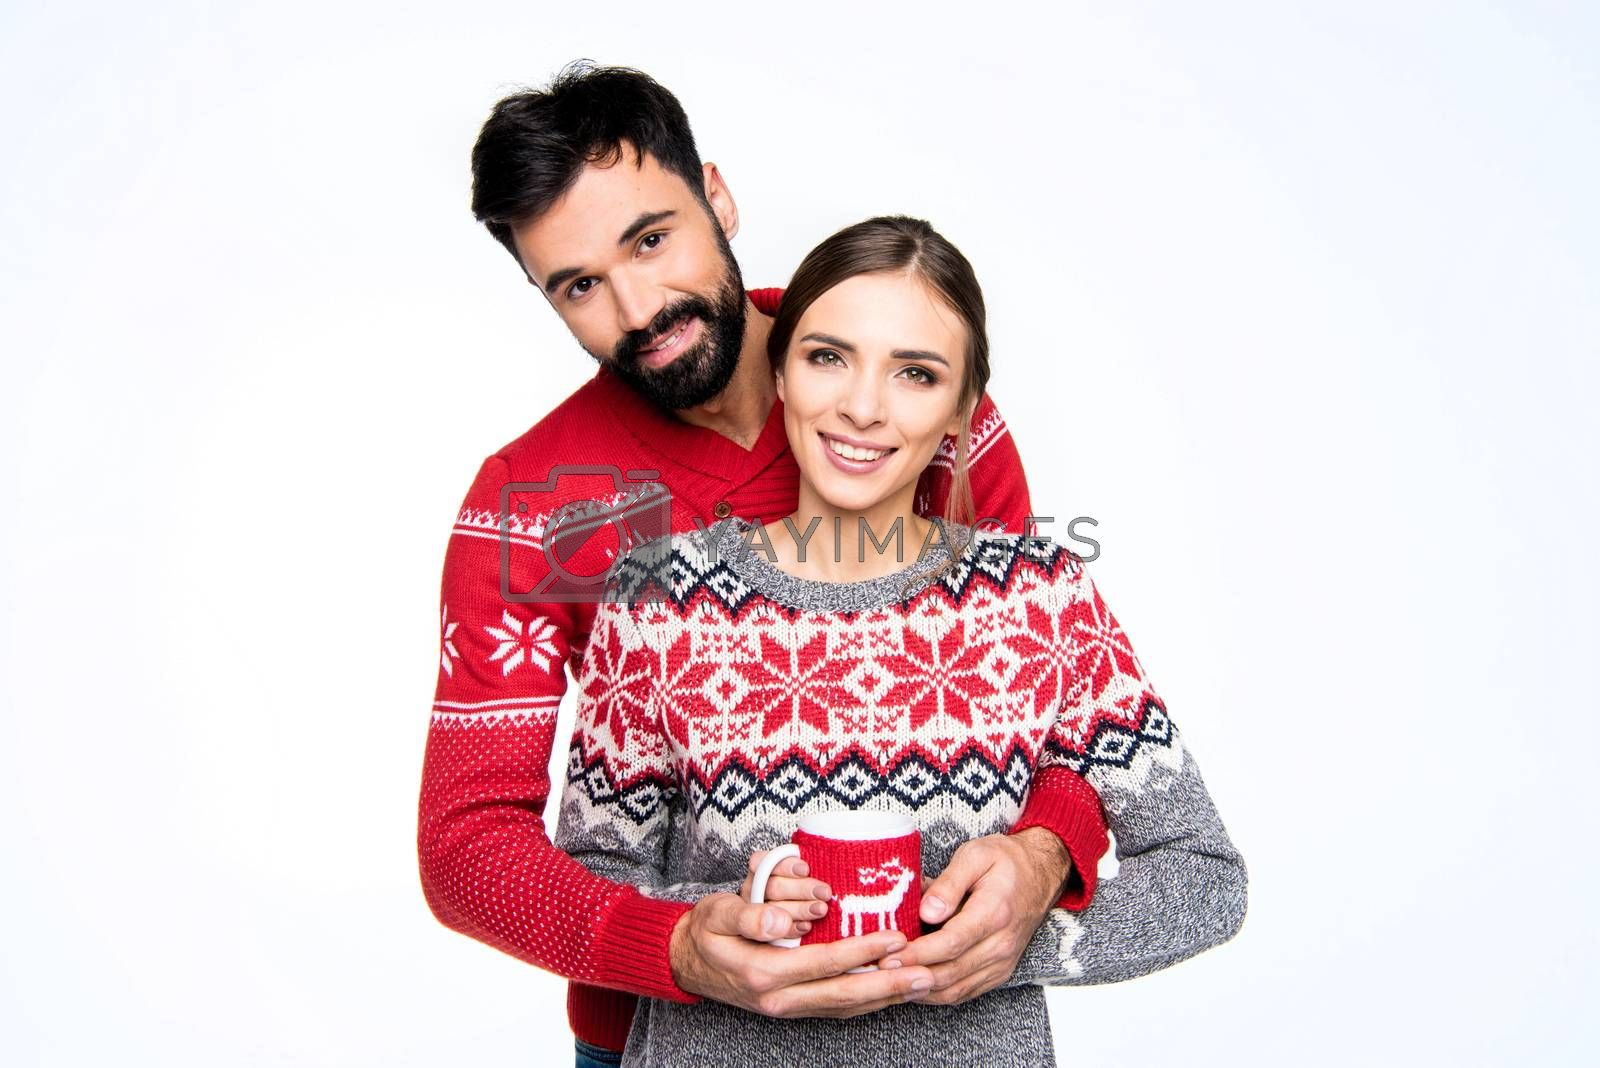 Smiling couple in knitted sweaters holding cup with hot drink